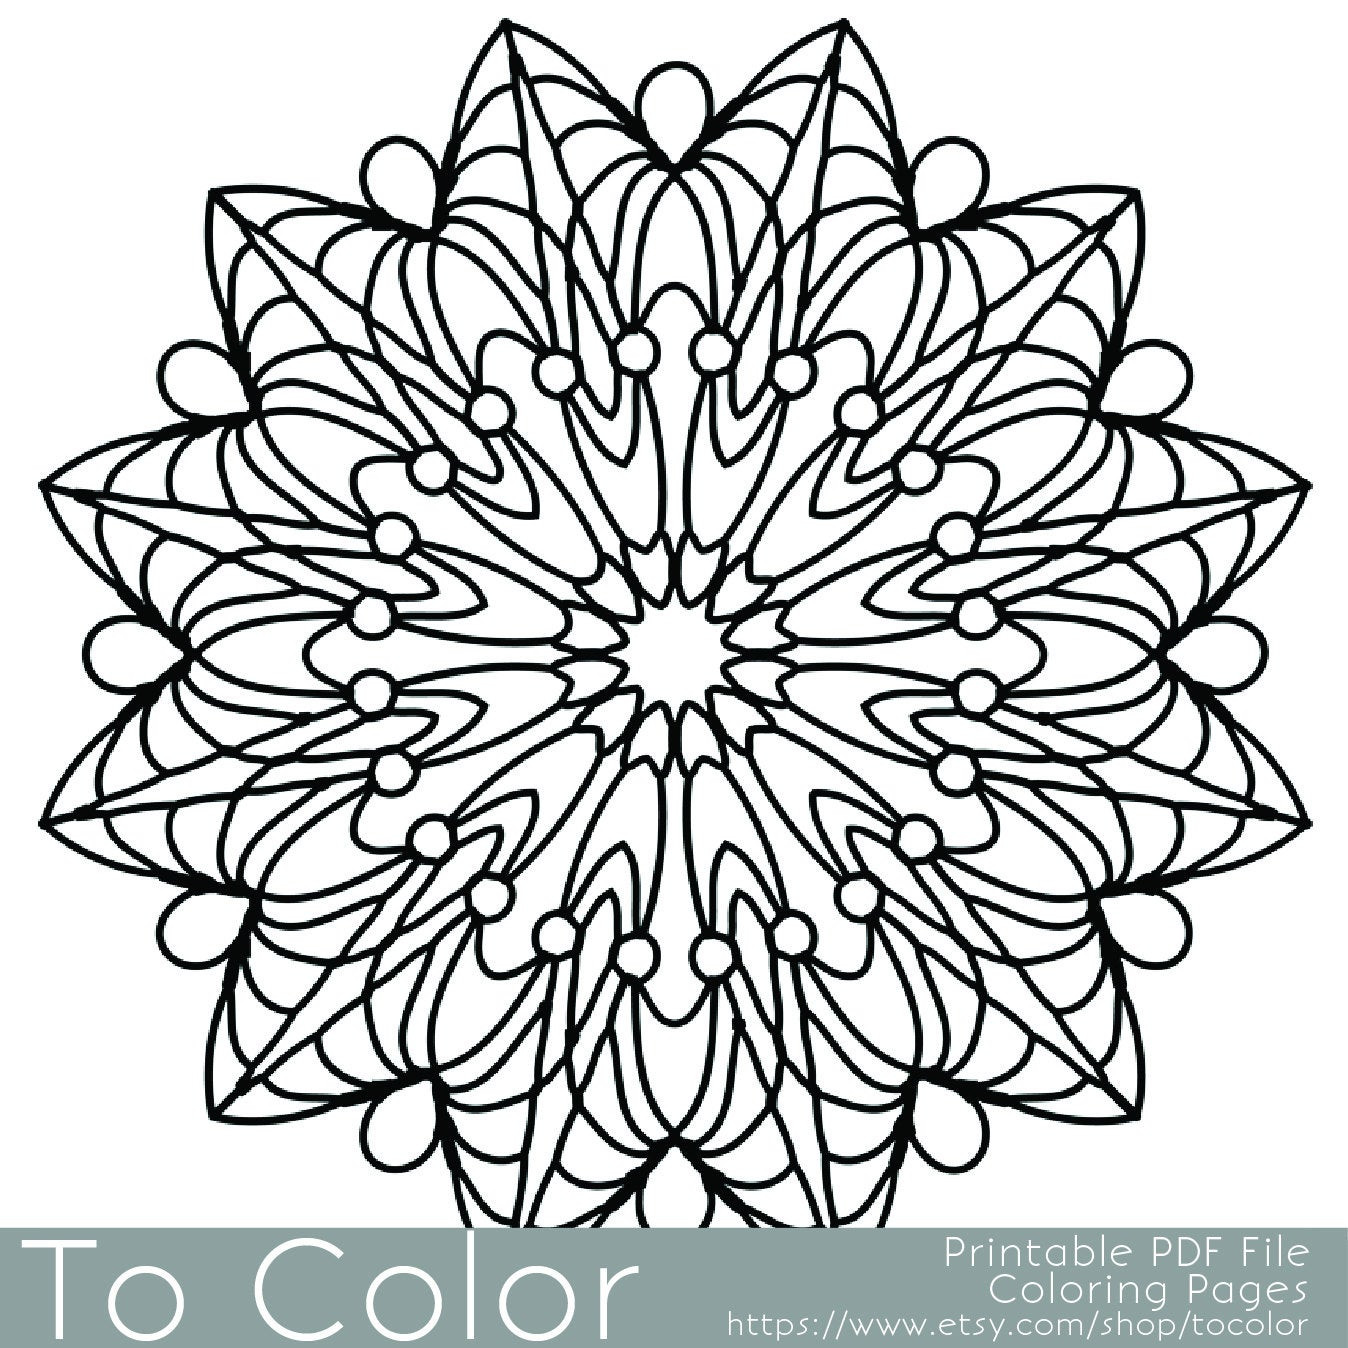 Best ideas about Easy Printable Coloring Pages For Adults . Save or Pin Simple Printable Coloring Pages for Adults Gel Pens Mandala Now.